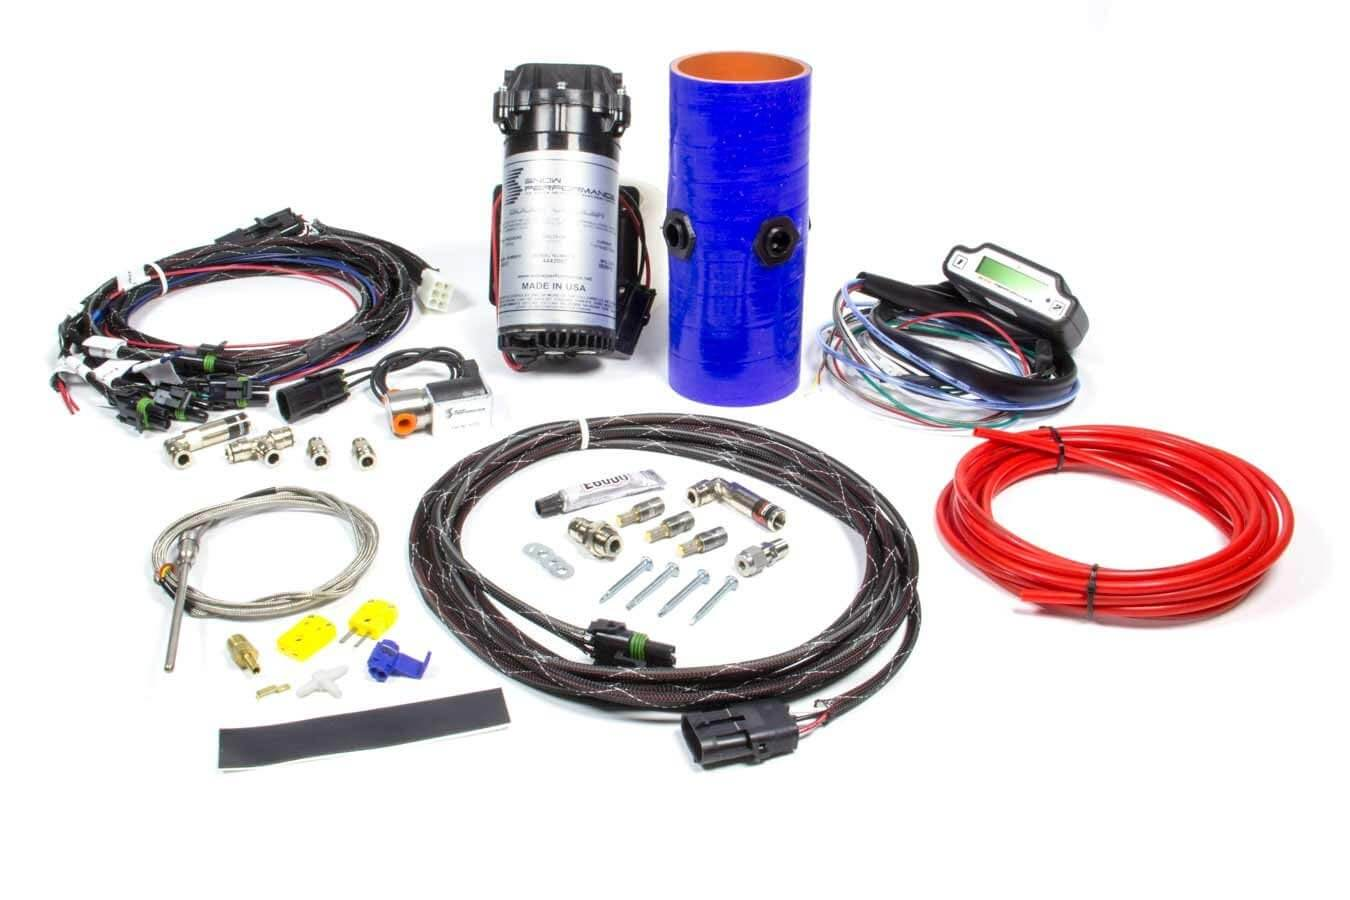 Diesel Stage Boost Cooler Water-Methanol Injection Kit